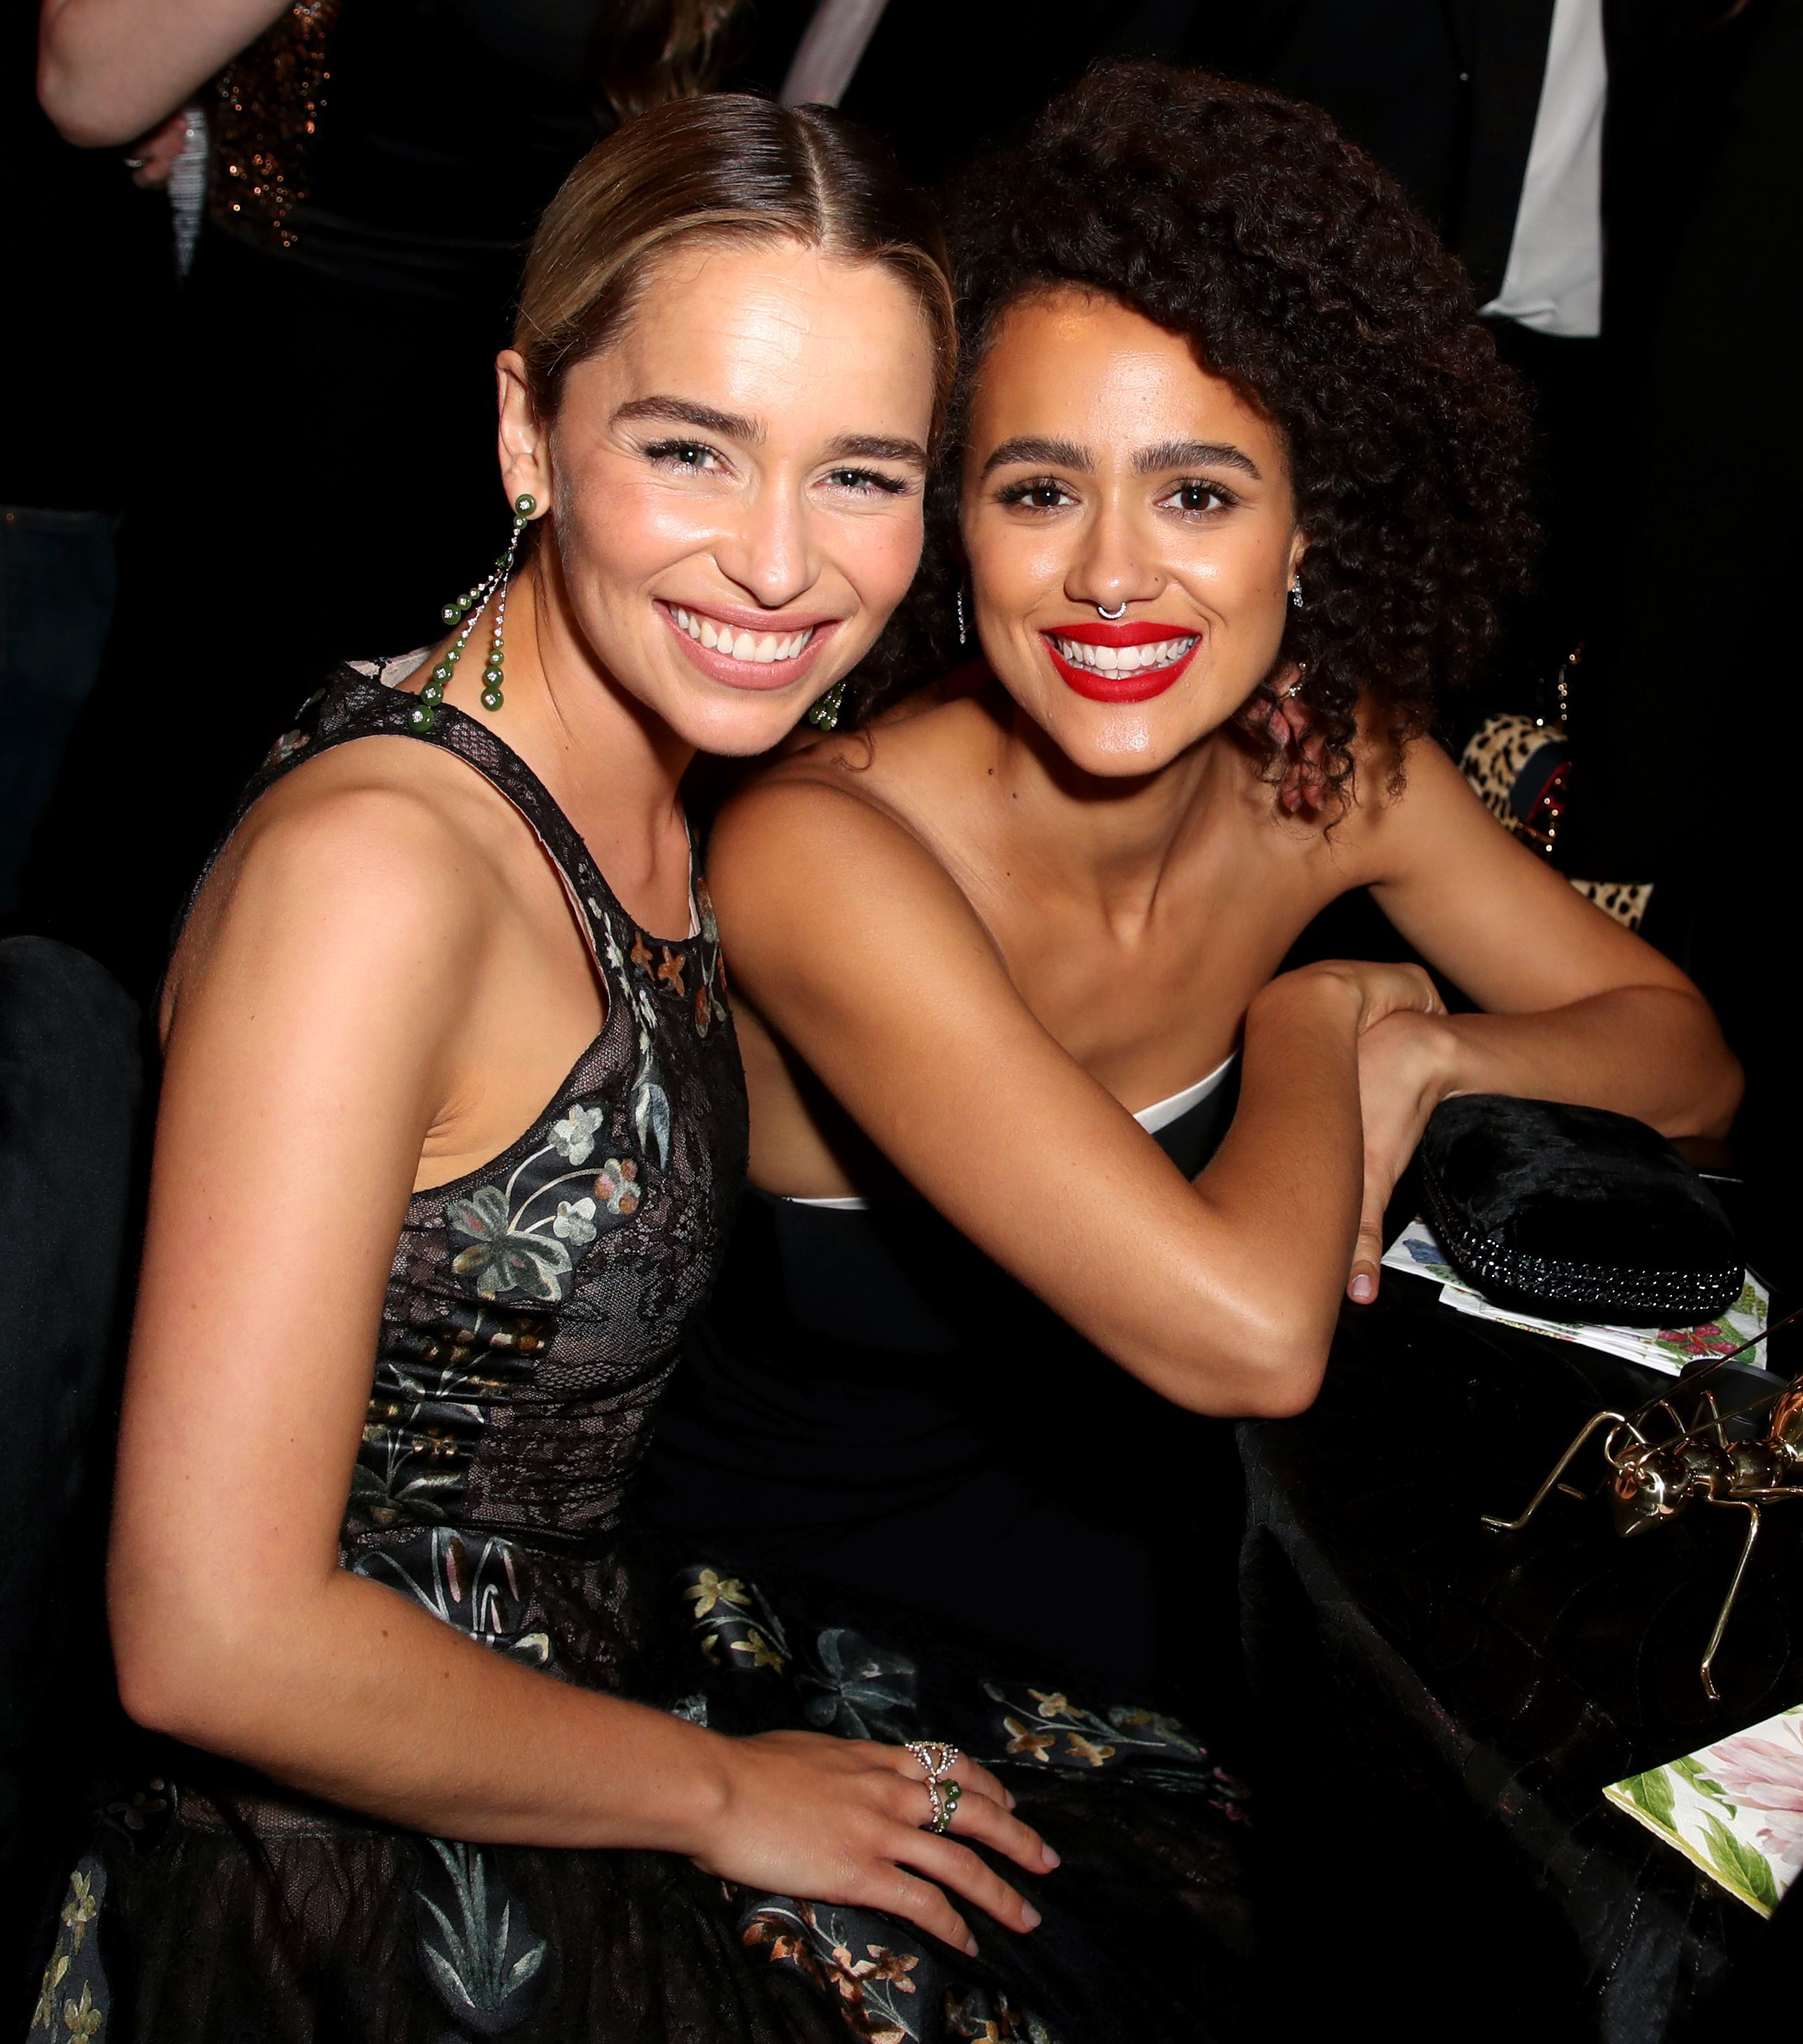 """""""Game of Thrones"""" co stars Emilia Clarke and Nathalie Emmanuel sit together at HBO's Emmys afterparty in Los Angeles on Sept. 17, 2018."""